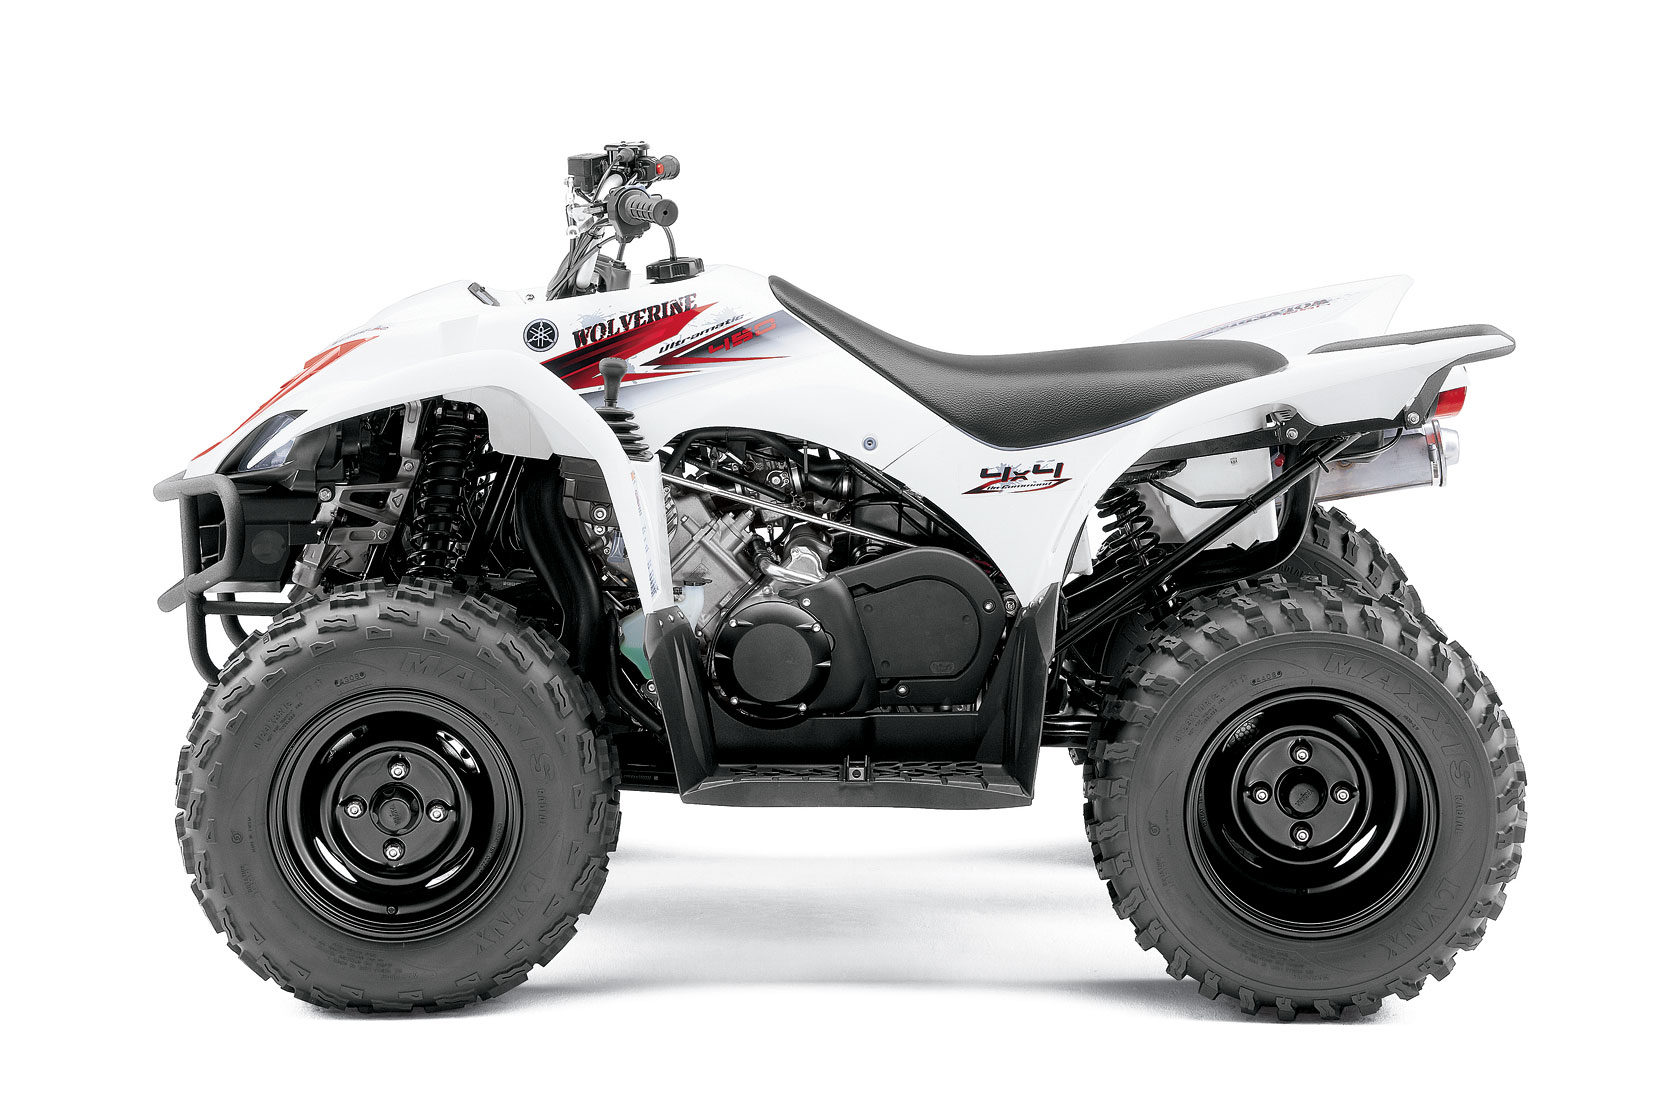 2008 Yamaha Wolverine 450 Wiring Diagram Trusted Schematics For A 2007 350 Atv Specs 2004 2005 2006 2009 Outboard